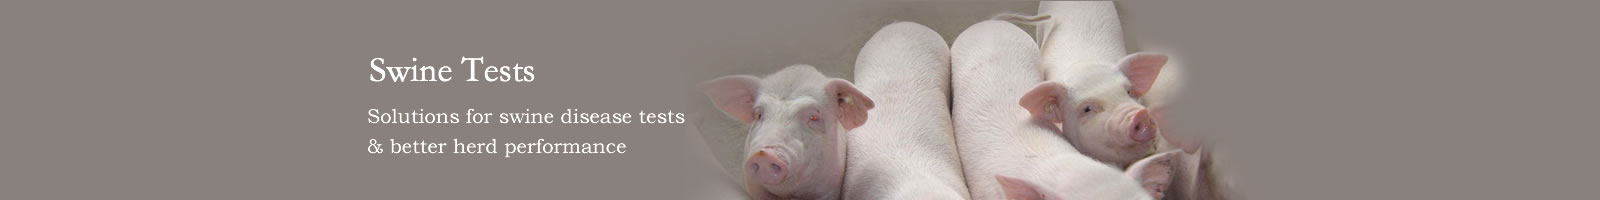 Swine Tests to identify swine diease and pregnancy